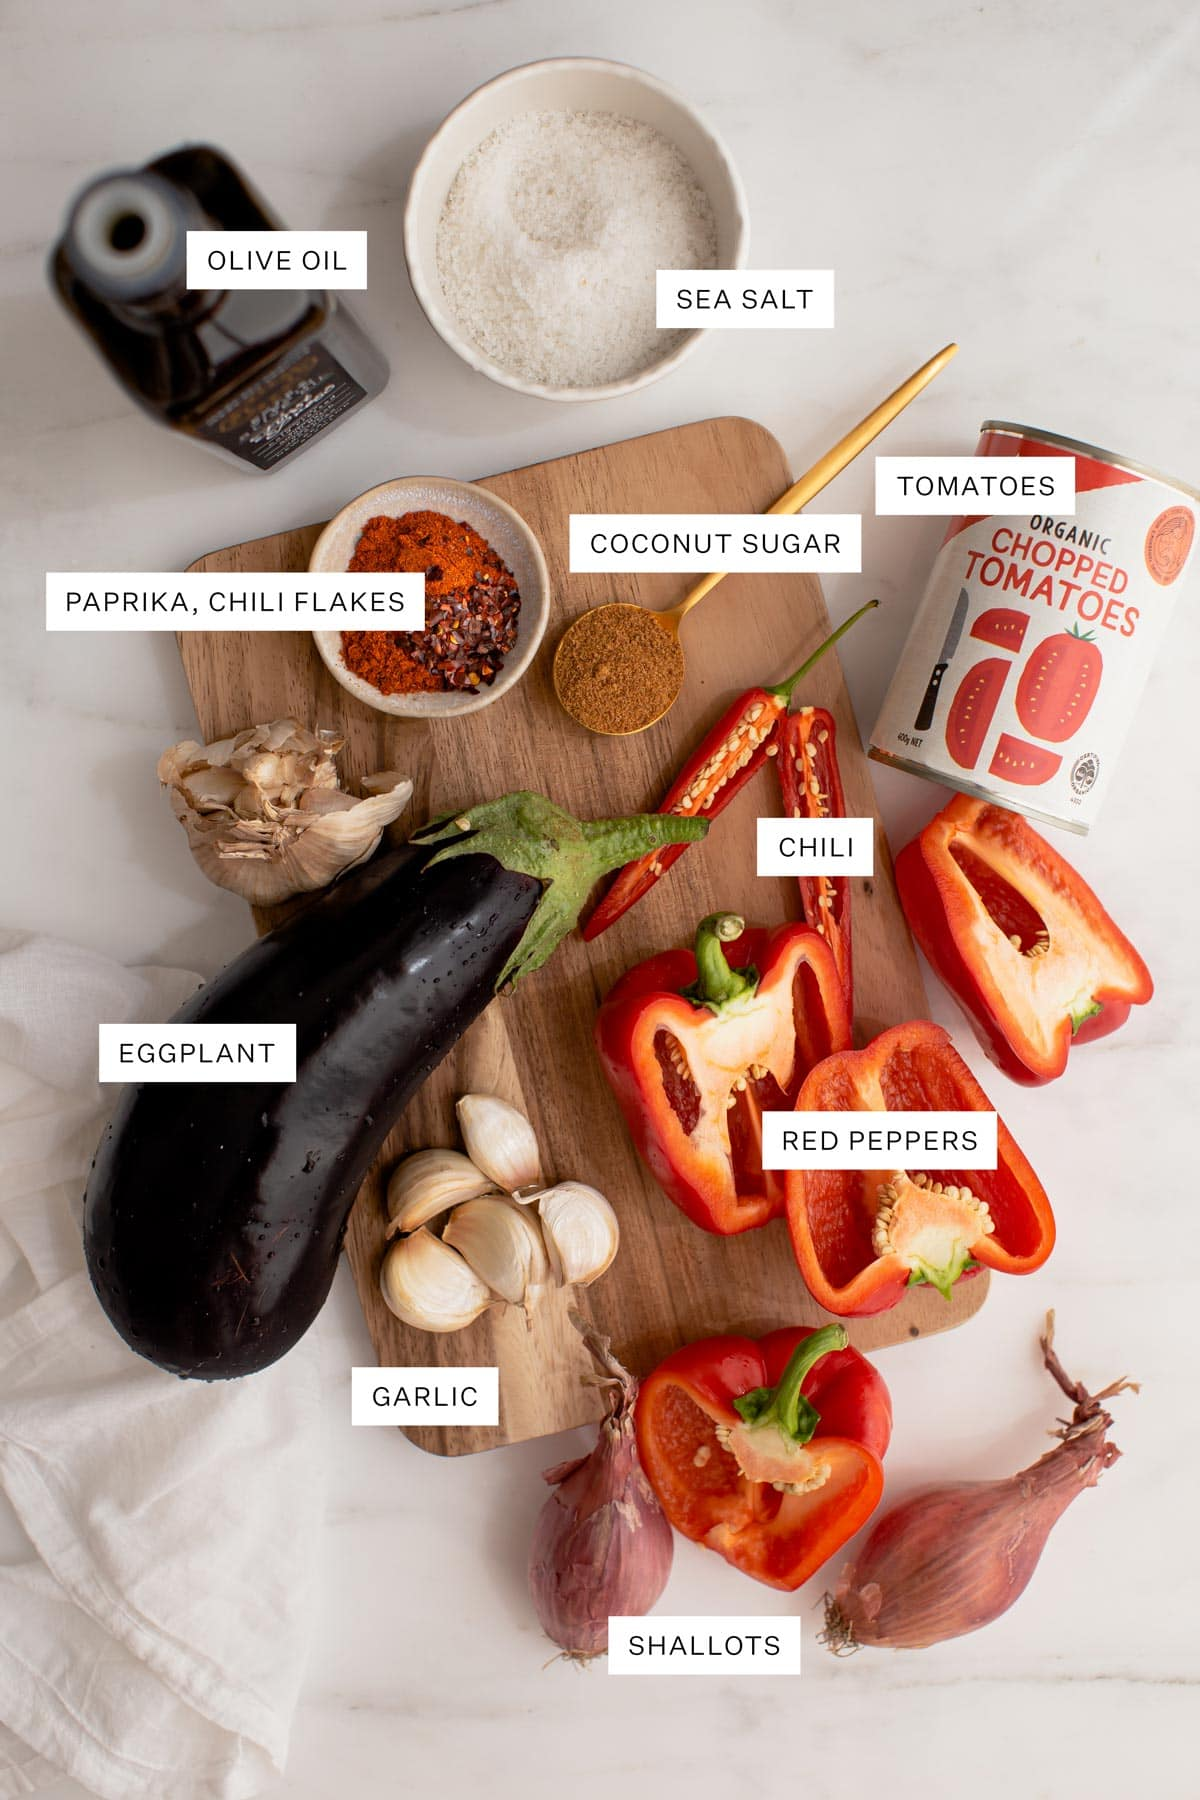 Flat lay of all the ingredients used to make this recipe - olive oil, salt, paprika, chili, coconut sugar, tinned tomatoes, eggplant, bell peppers and garlic.